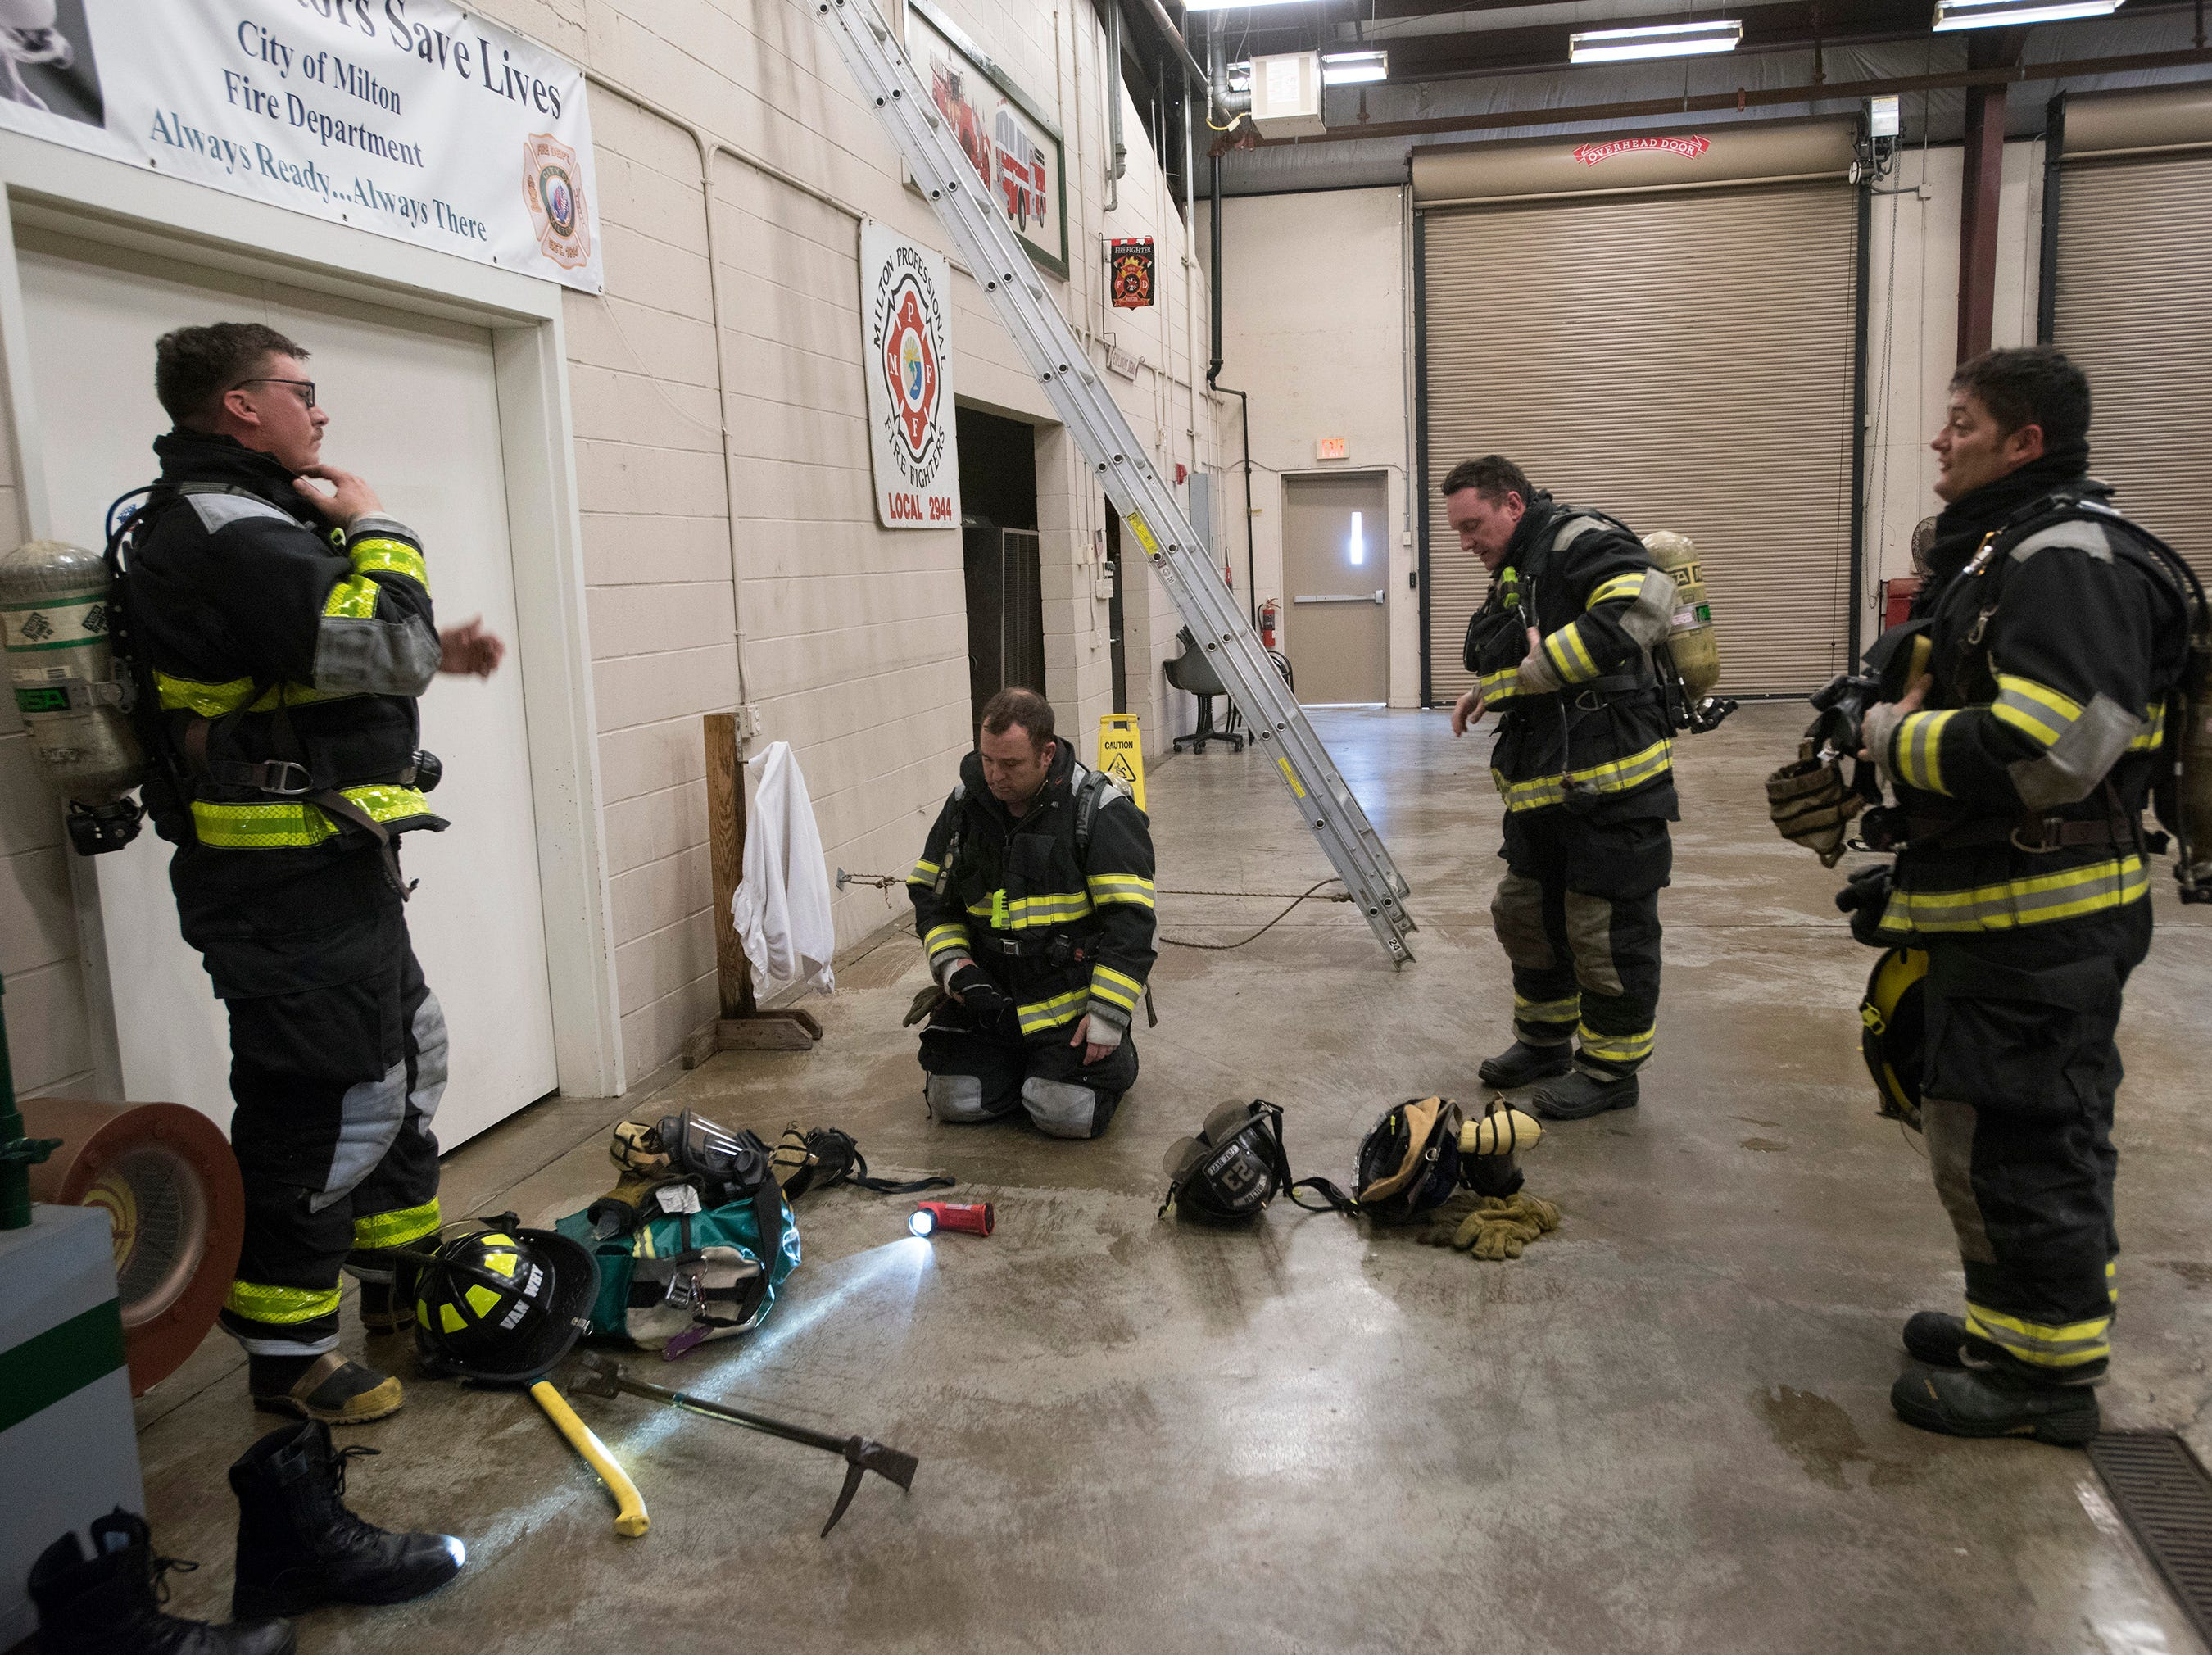 Milton Firefighters prepare for training at the Stewart Street fire station on Thursday, Feb. 7, 2019. The Milton FD released its annual report this week and said their calls for service increased exponentially last year.